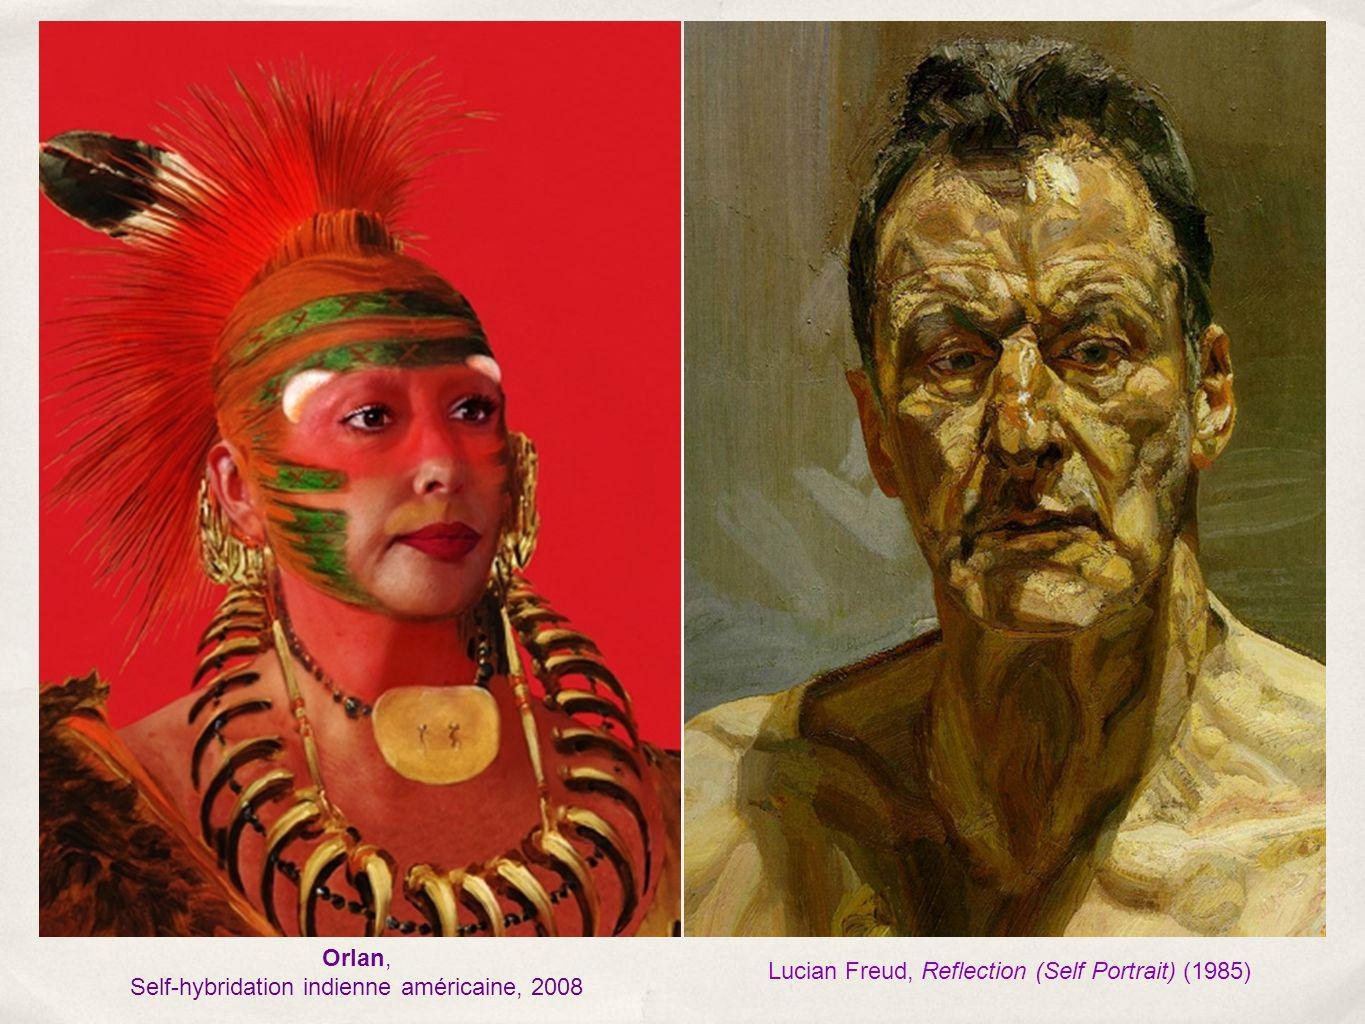 Orlan, Self-hybridation indienne américaine, 2008 Lucian Freud, Reflection (Self Portrait) (1985)